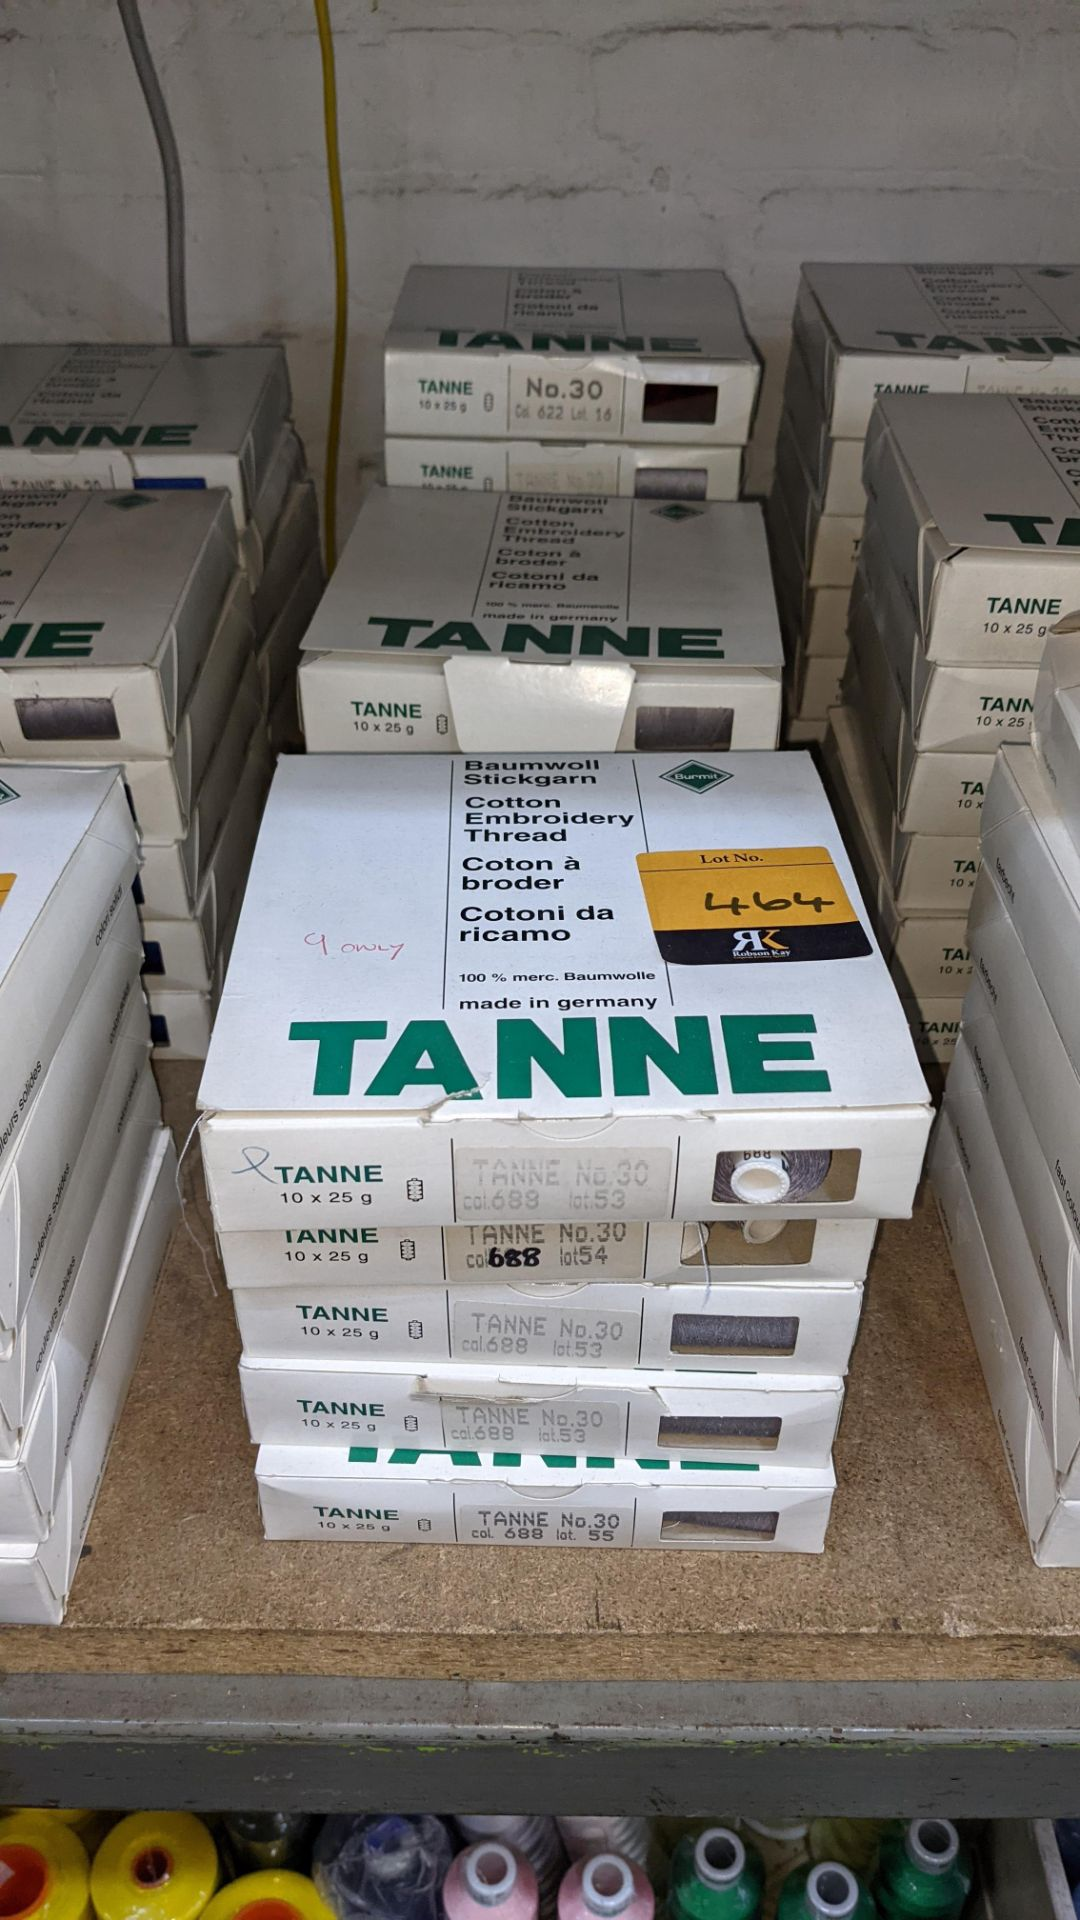 16 boxes of Madeira Tanne (Burmit) cotton embroidery thread - Image 2 of 8